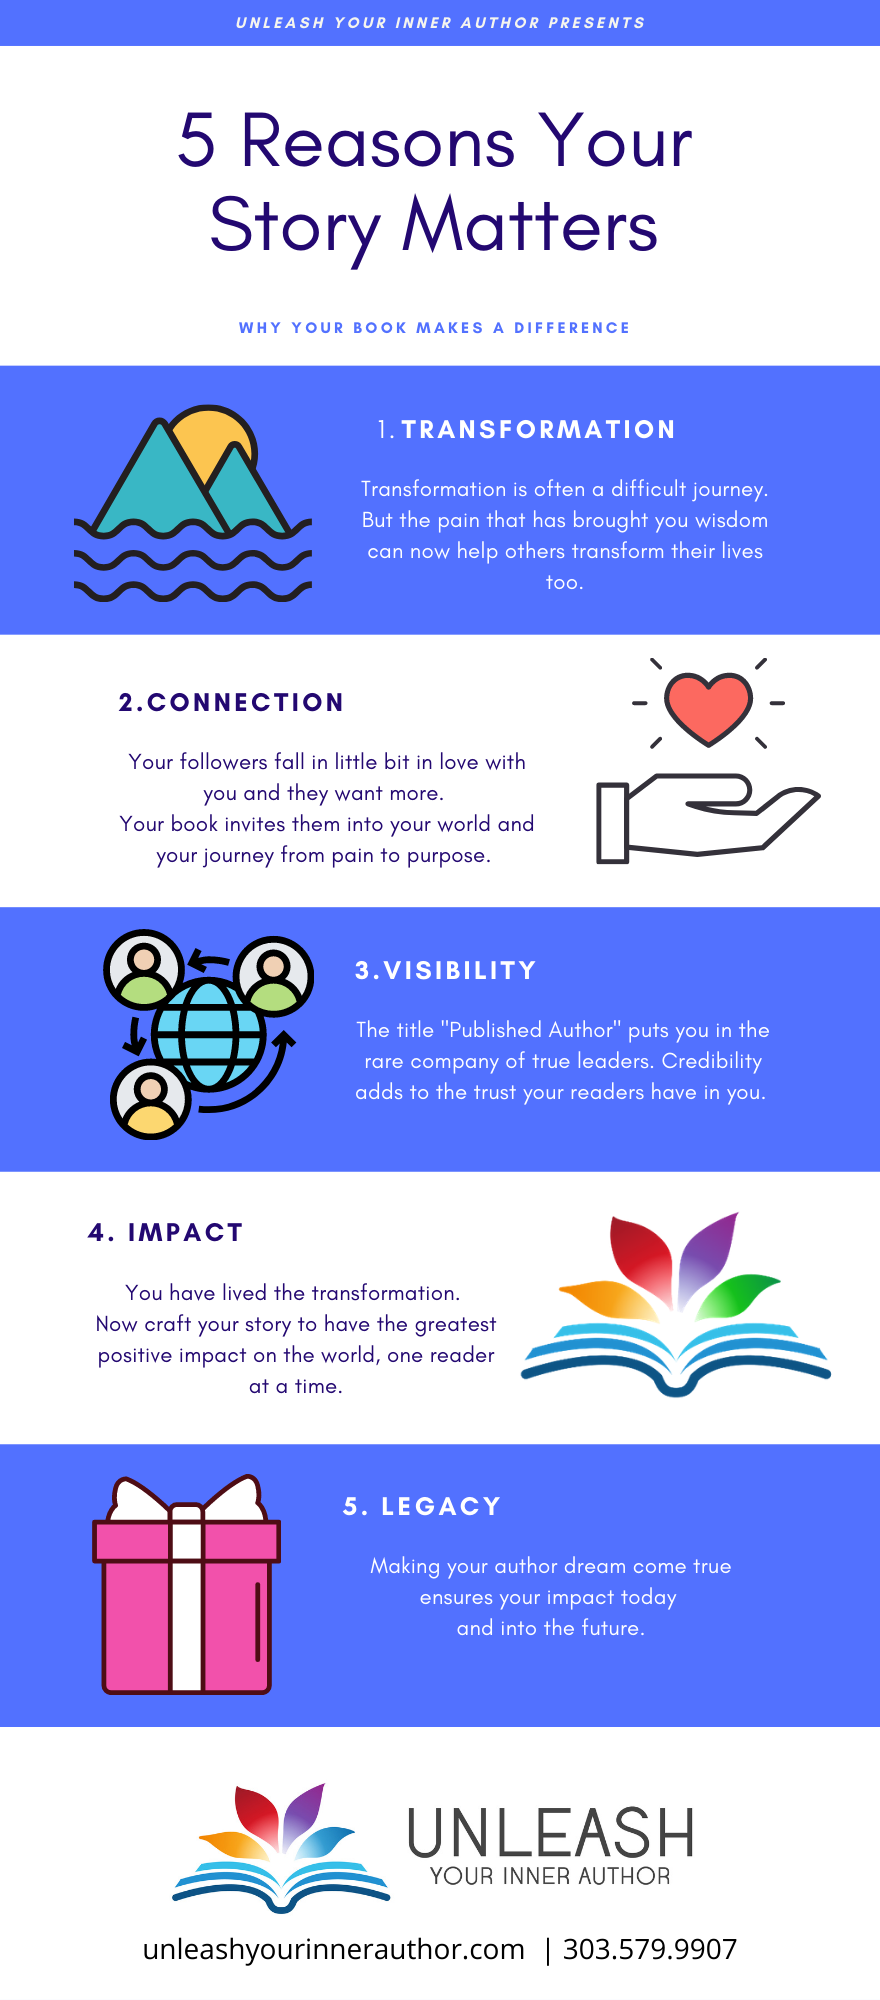 5 Reasons Your Story Matters